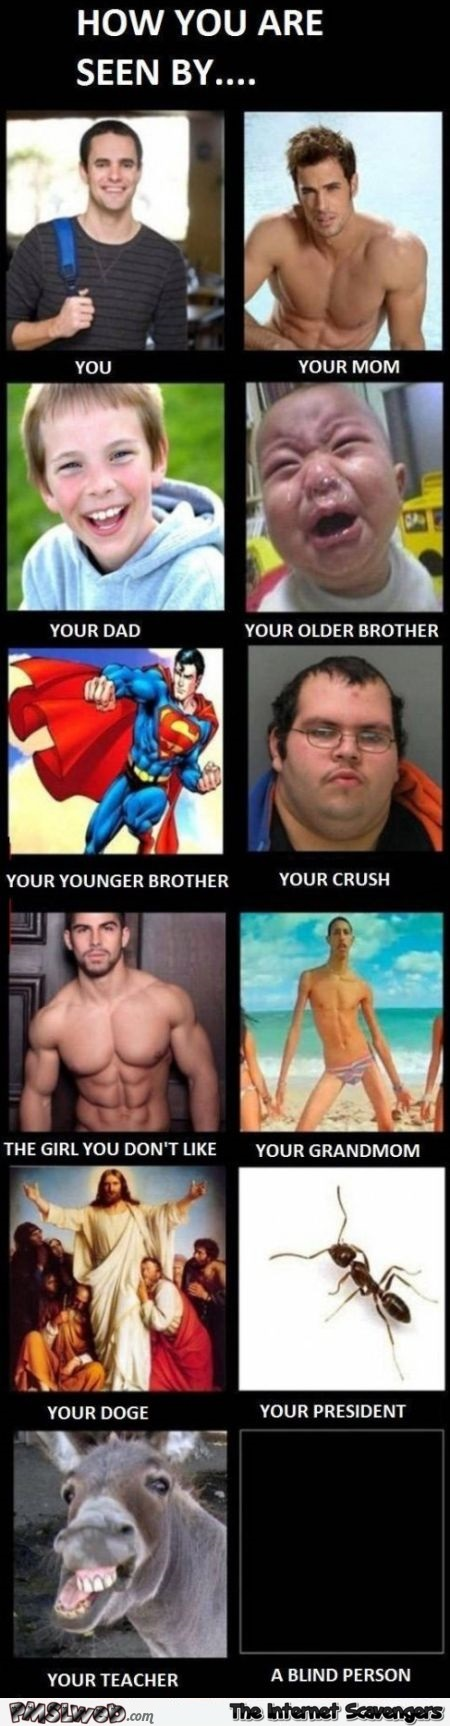 How you are seen by different people funny meme @PMSLweb.com